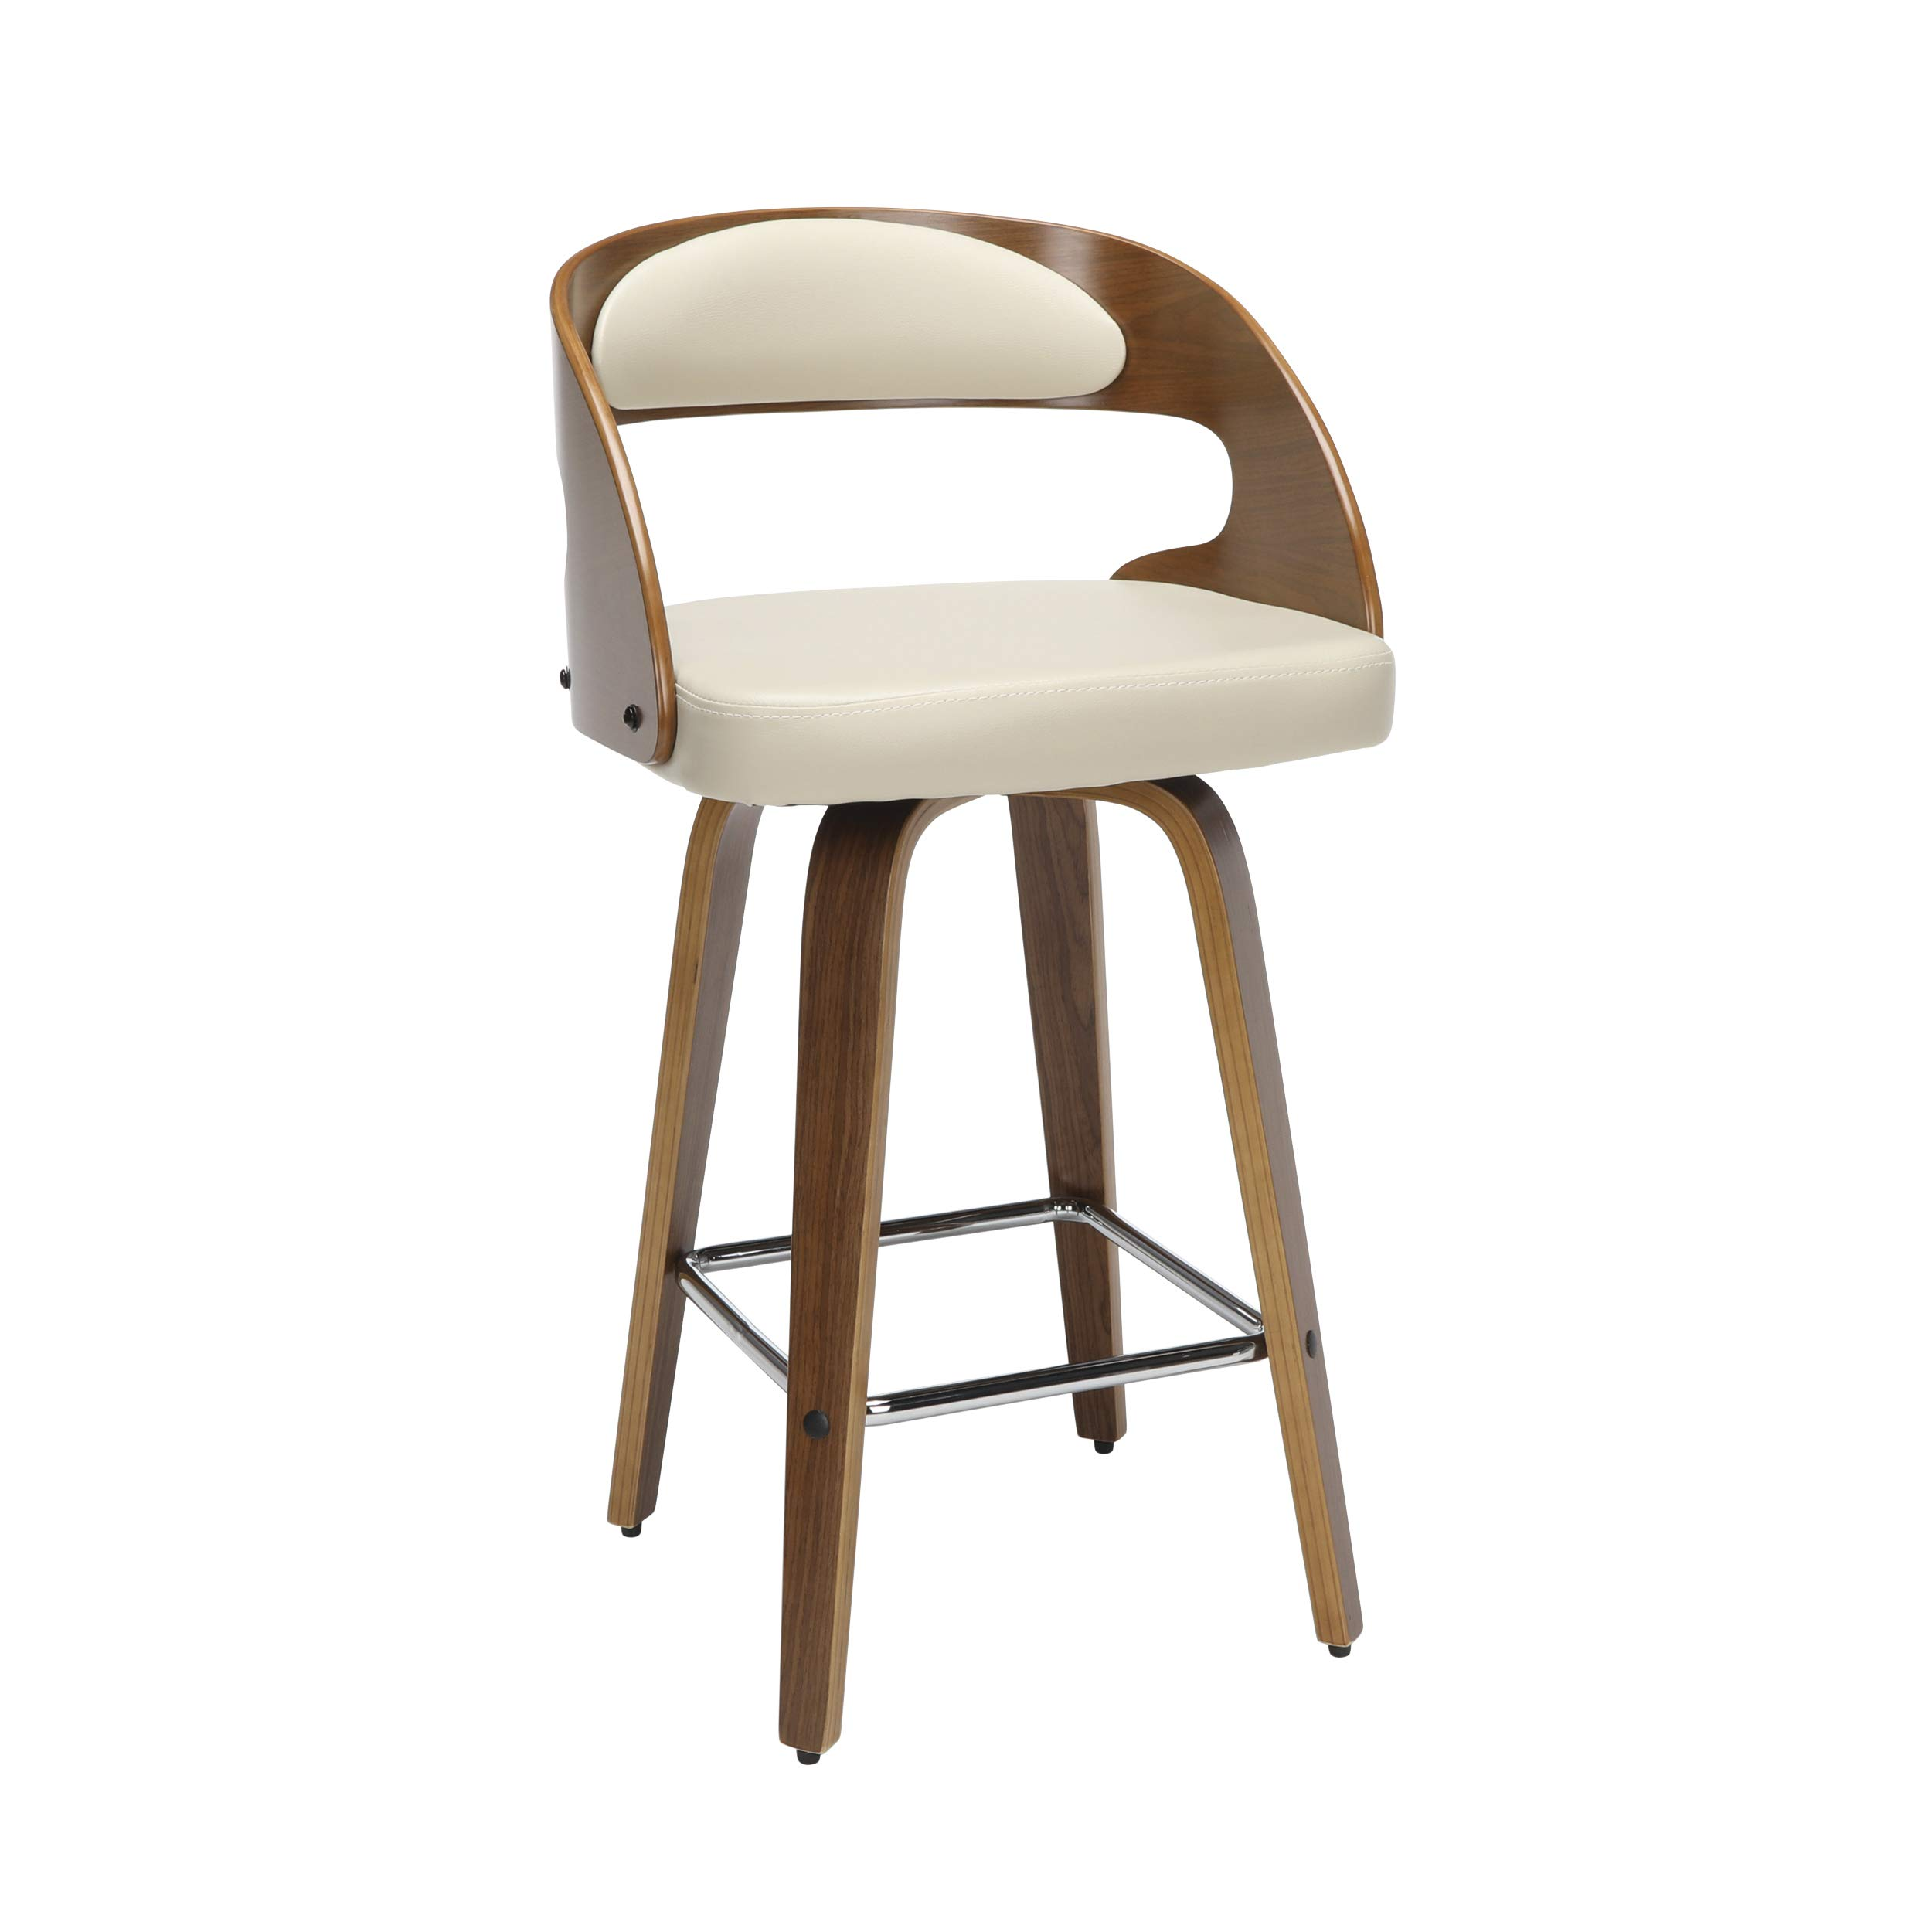 OFM 161 Collection Mid Century Modern 26'' Bentwood Frame Swivel Seat Stool with Vinyl Back and Seat Cushion, in Walnut/Ivory by OFM